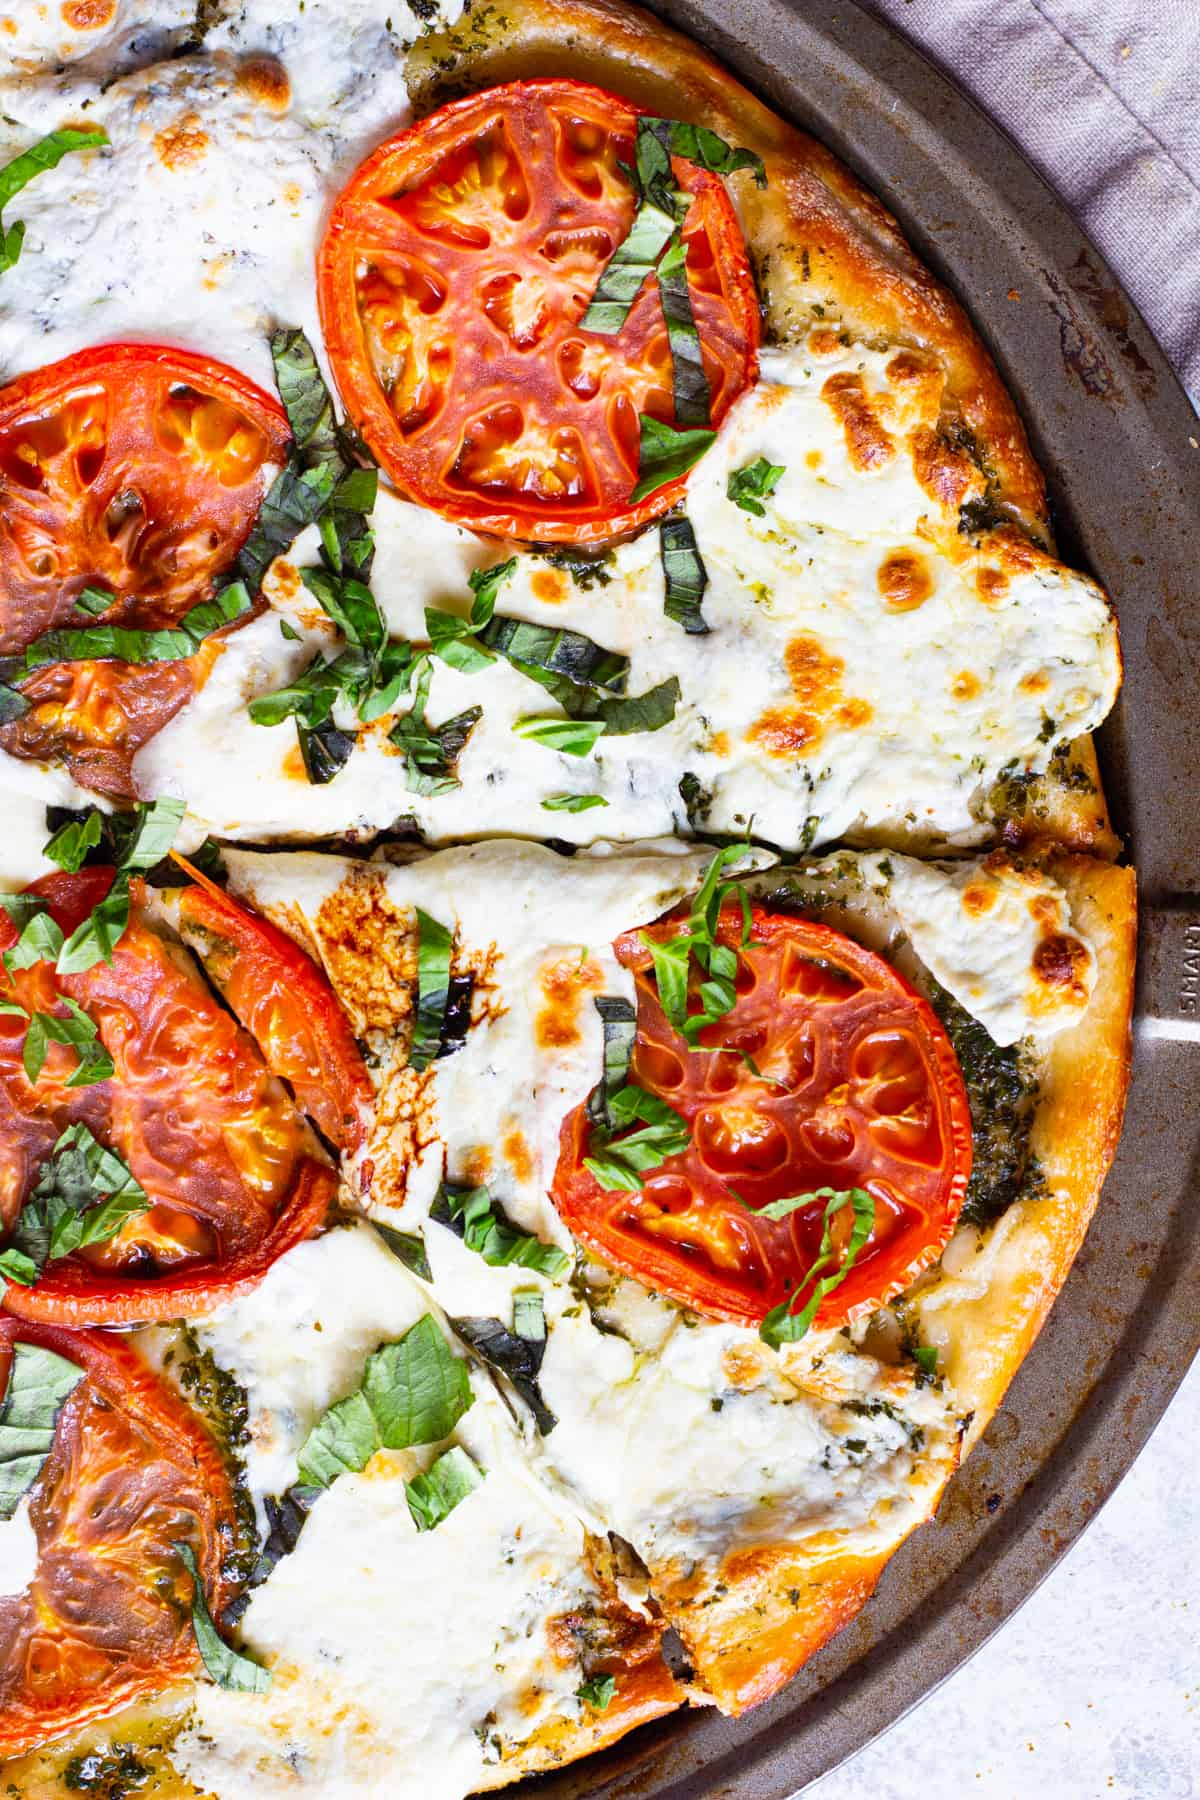 Pizza with mozzarella, tomatoes and basil.